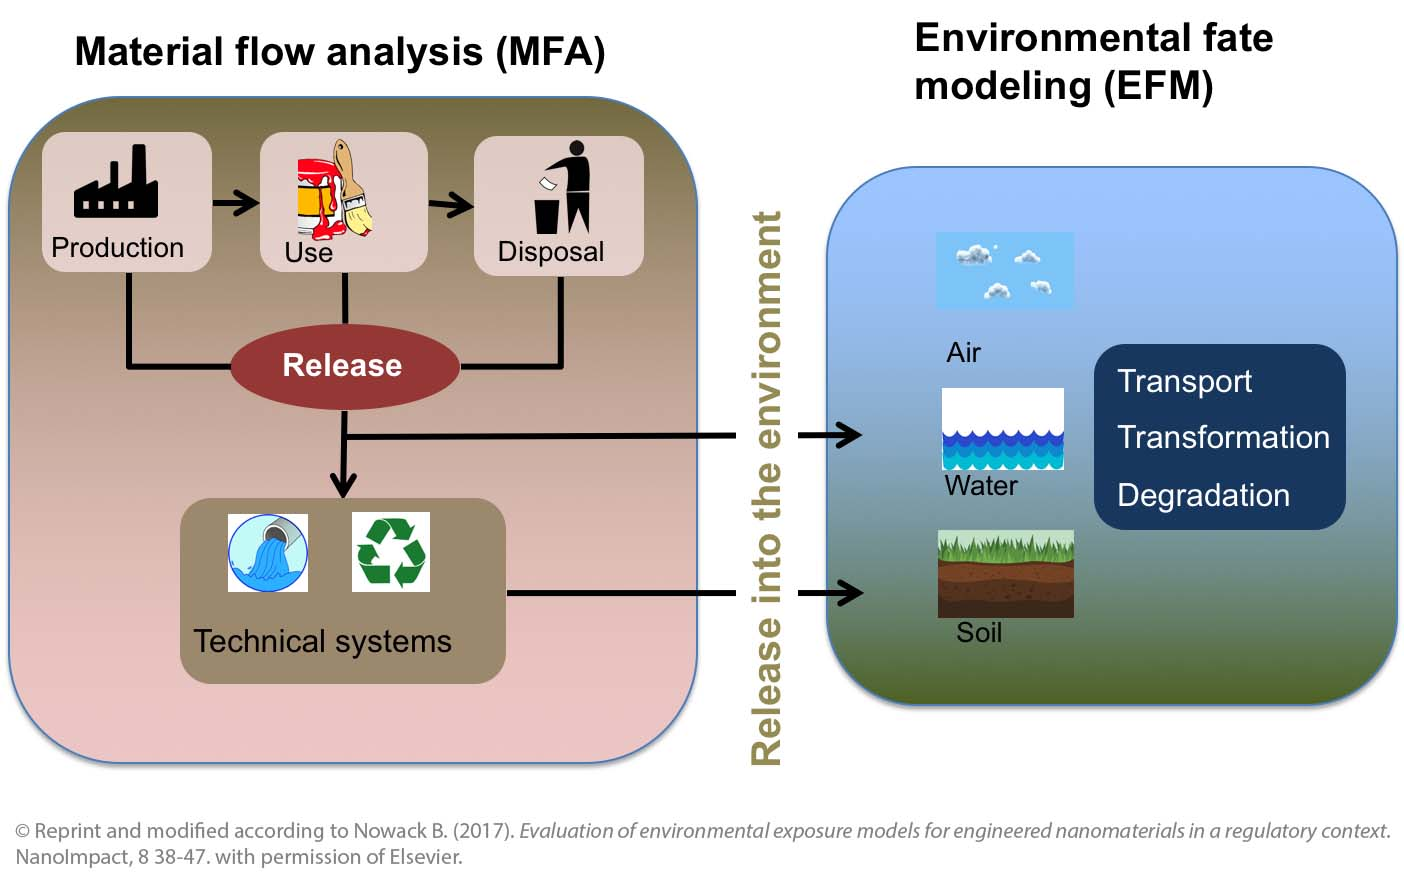 Exposure models Material flow analysis (left) and environmental behaviour modelling (right). The material flow analysis calculates the release of nanomaterials into the environment, environmental behaviour modelling describes the distribution in the environment. © Reprint and modified according to Nowack B. (2017). Evaluation of environmental exposure models for engineered nanomaterials in a regulatory context. NanoImpact, 8 38-47. with permission of Elsevier.